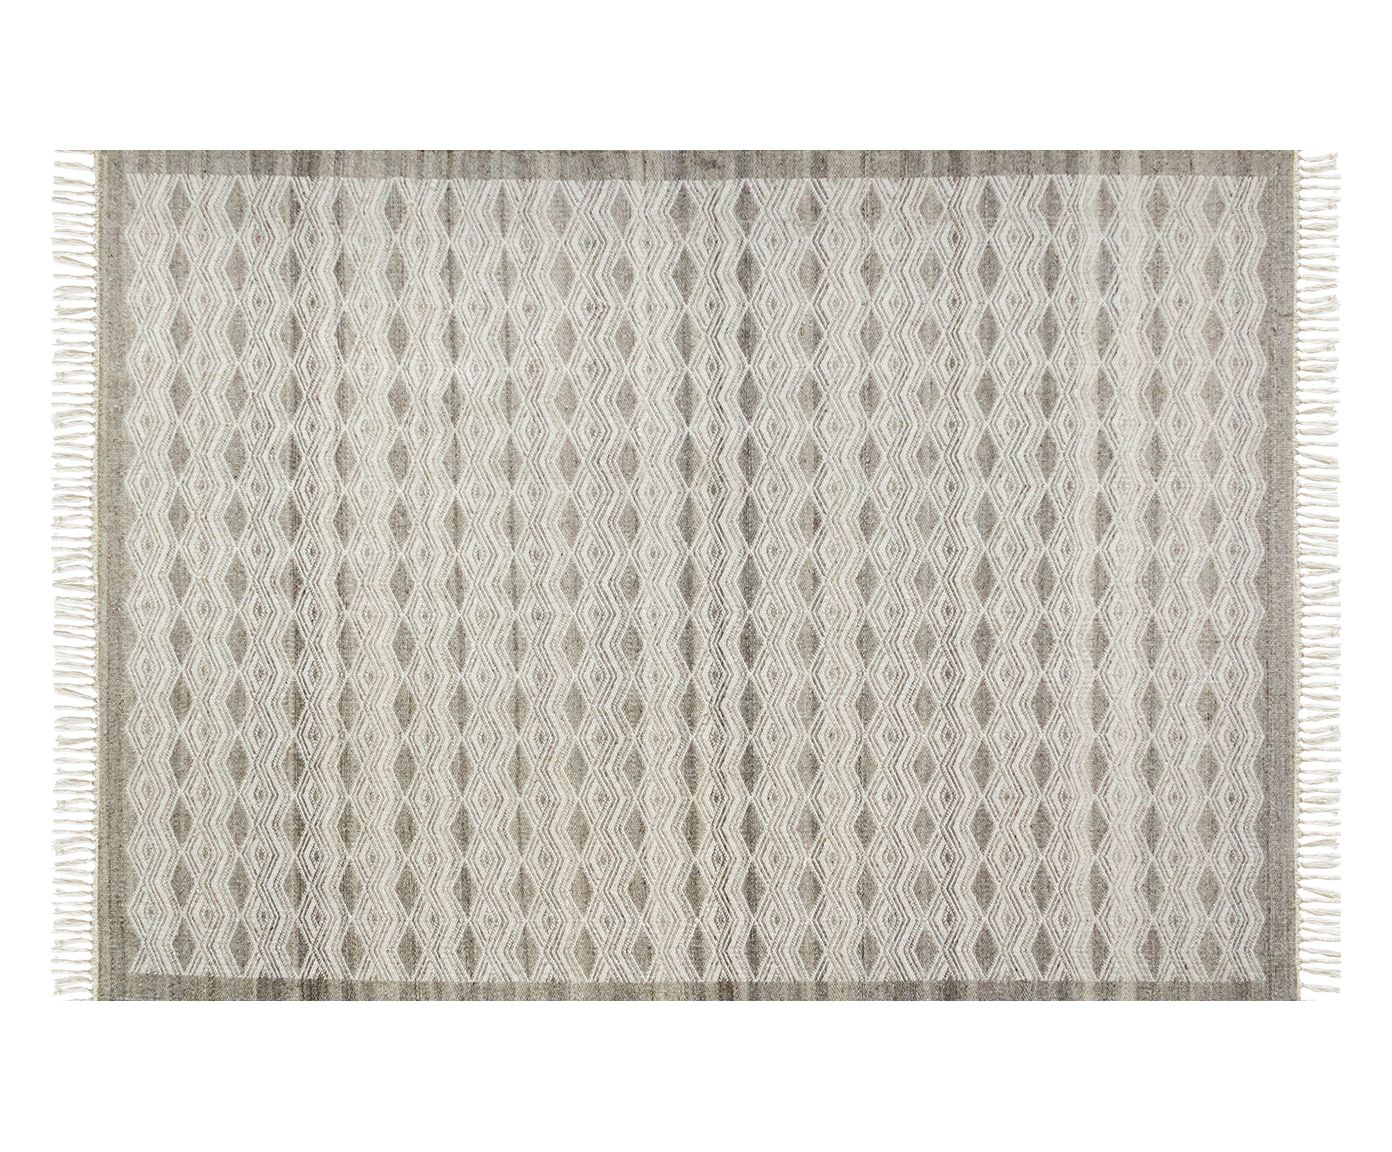 Tapete Indiano com Franja Nordic Taupe - 150X200cm | Westwing.com.br